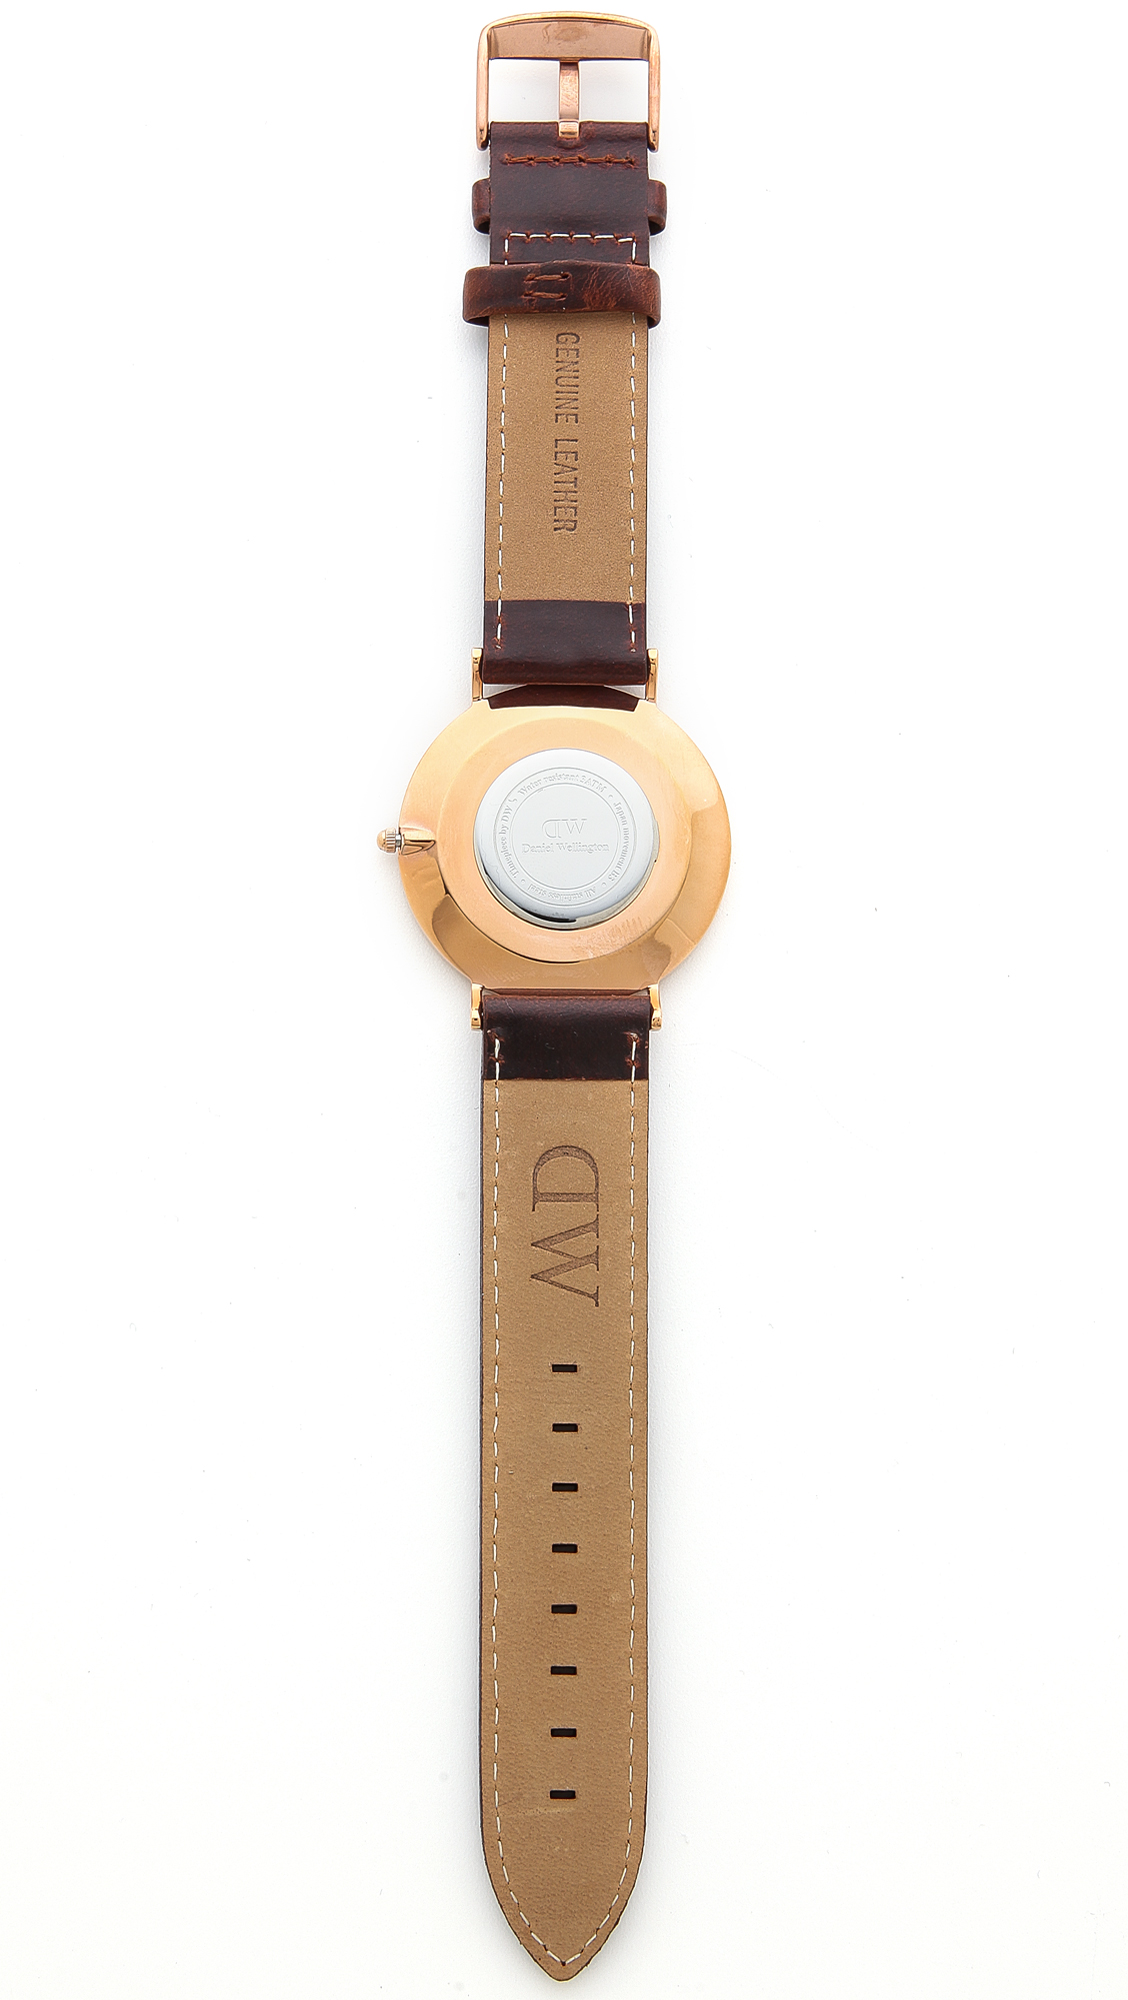 6b8a177590d3 Daniel Wellington St. Mawes 40mm Watch with Brown Leather Band ...